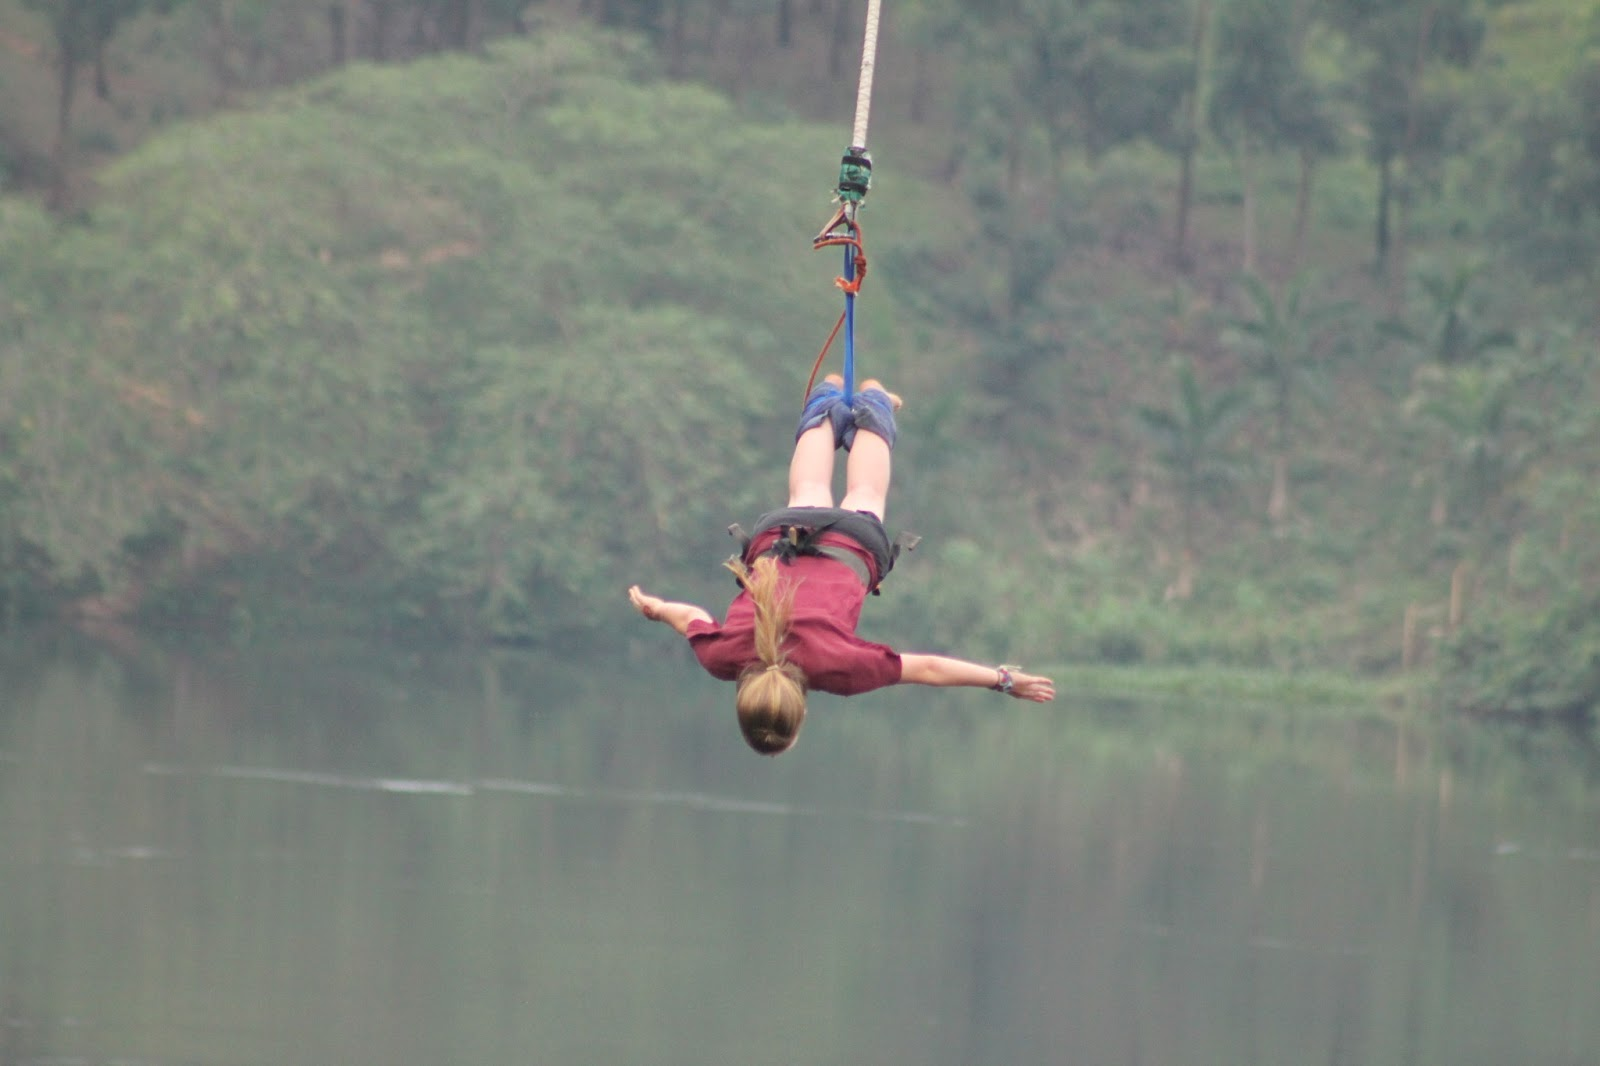 a description of the benefits of engaging into bungee jumping Bungee jumping is a recreational activity that involves jumping from a high surface while attached to an elastic cord one end of this elastic cord is attached to the this causes the jumper to bounce up and down over the length of the jumping area until the energy from the jump has been depleted.